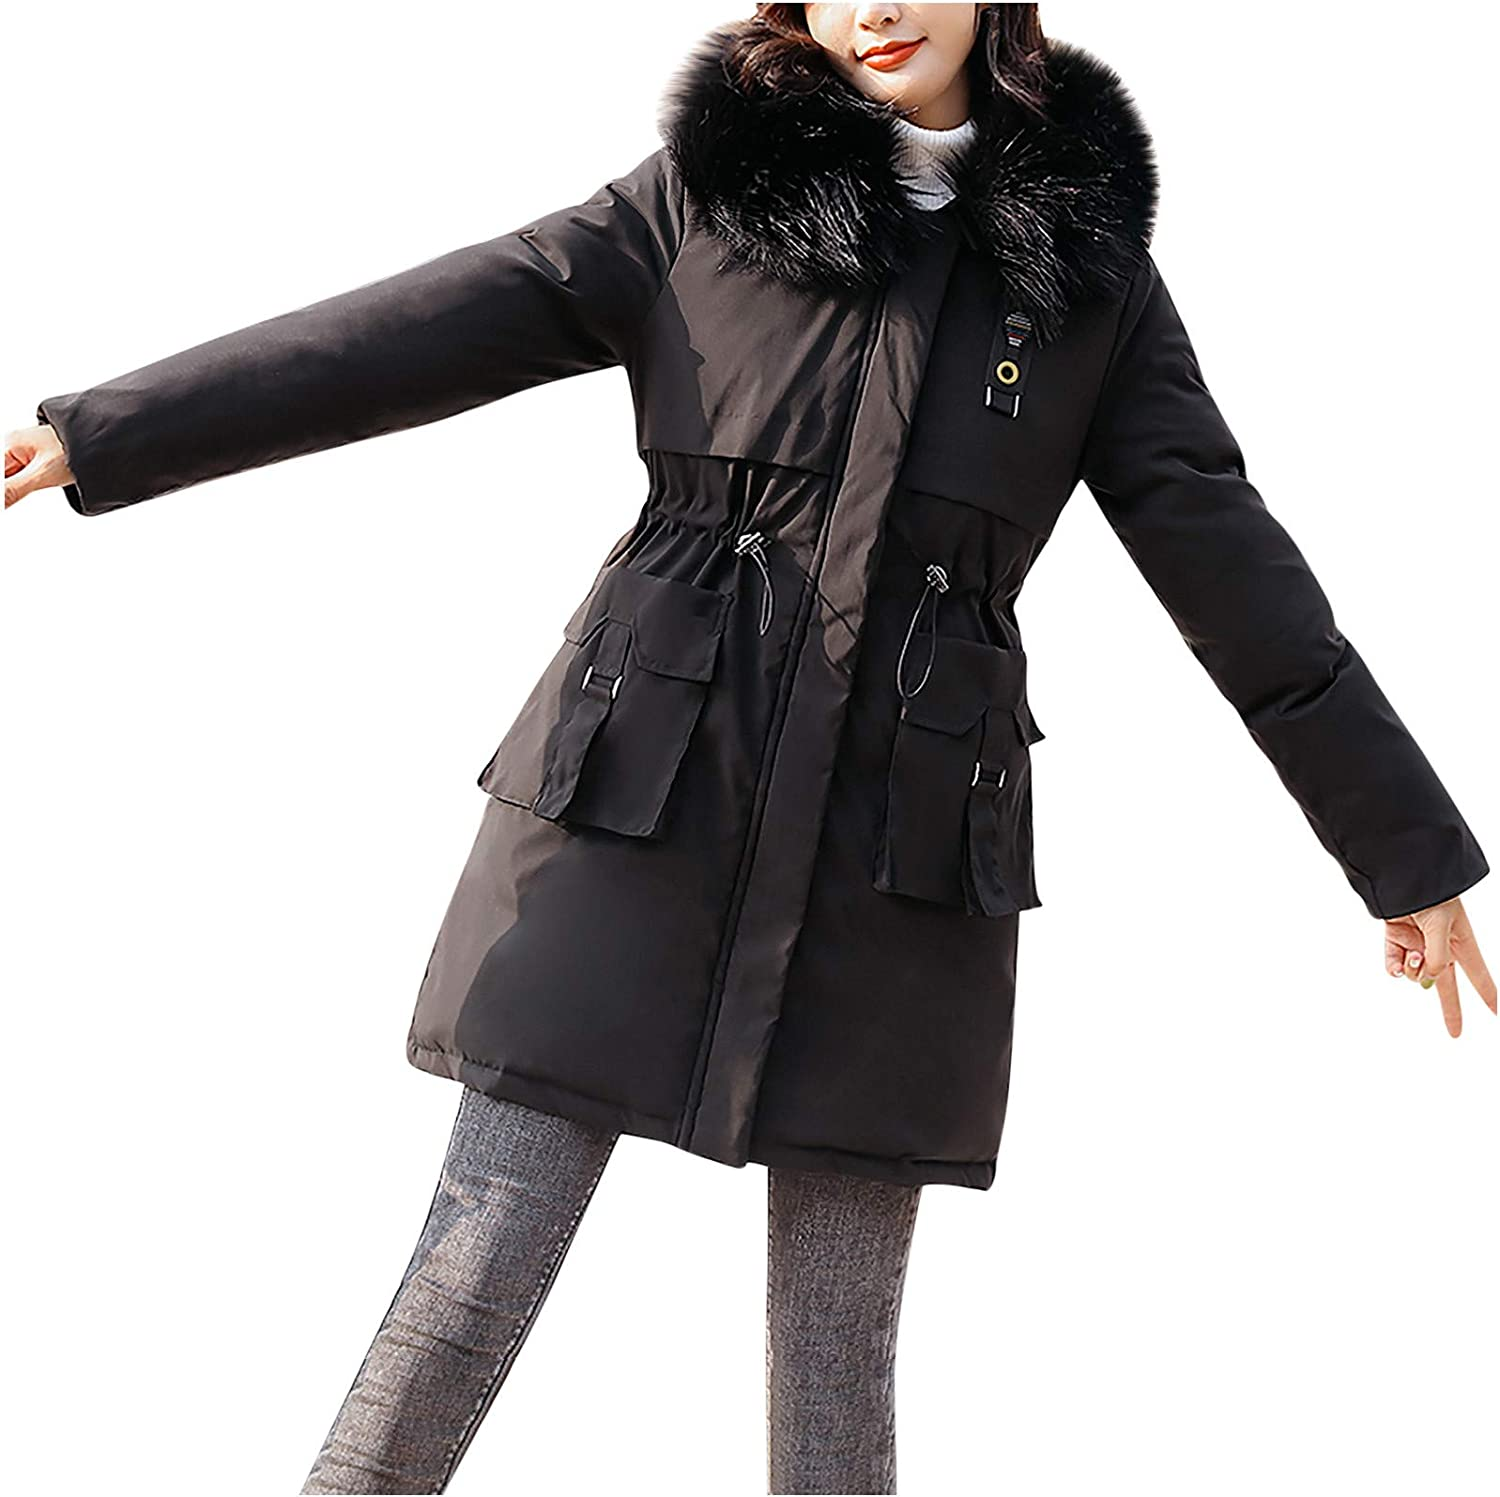 HGWXX7 Womens Overcoat Safety and trust Fashion Zip Up Faux Fur with Jacket Reservation Parka